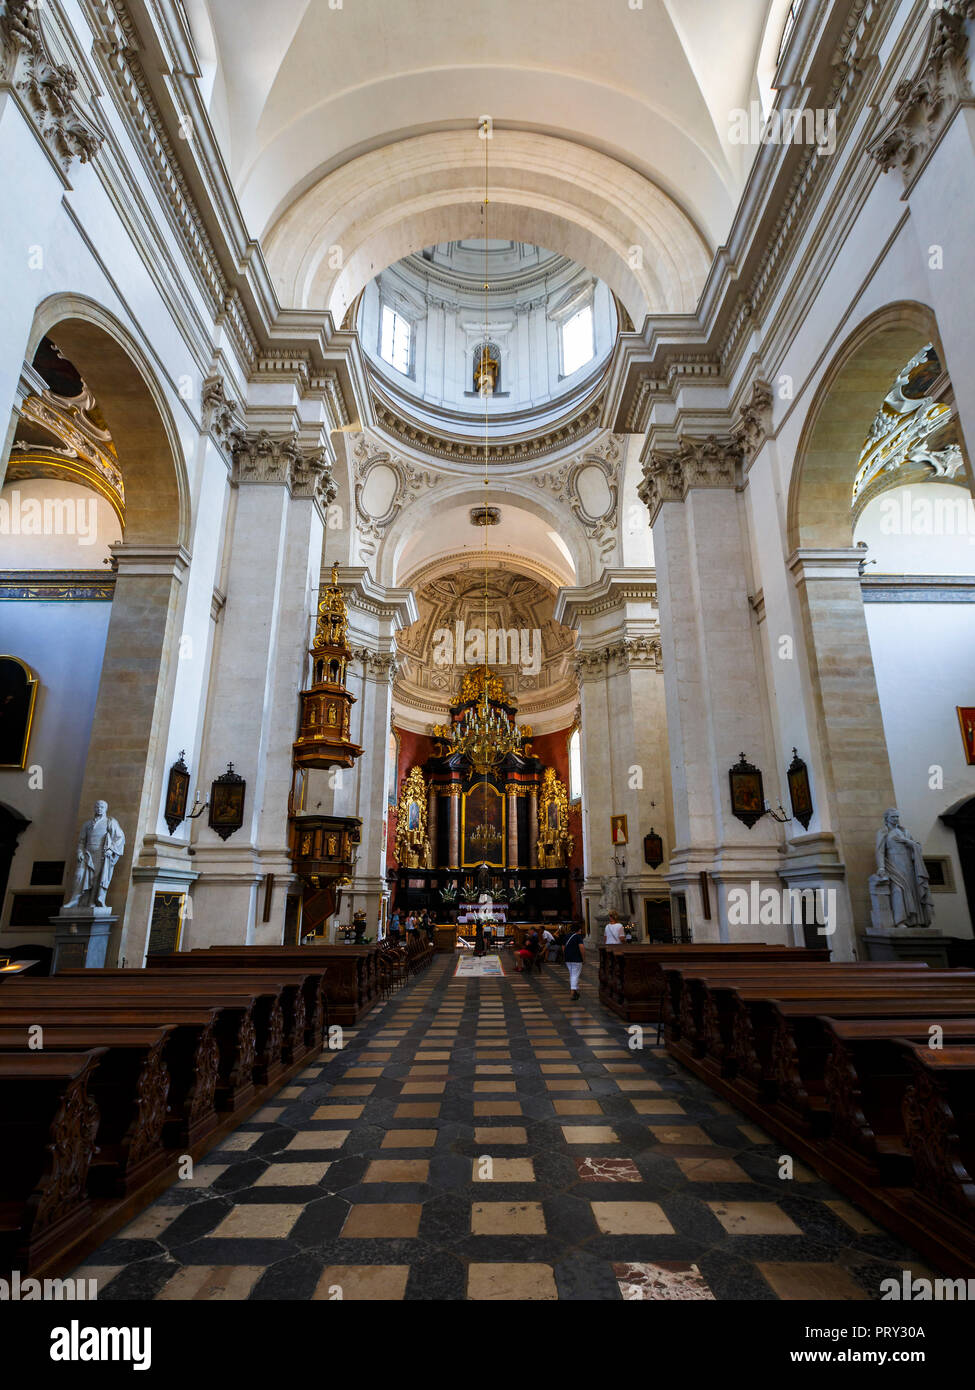 Krakow, Poland - August 23, 2018: Interior of Saints Peter and Paul Church in the old town of Krakow, Poland. - Stock Image